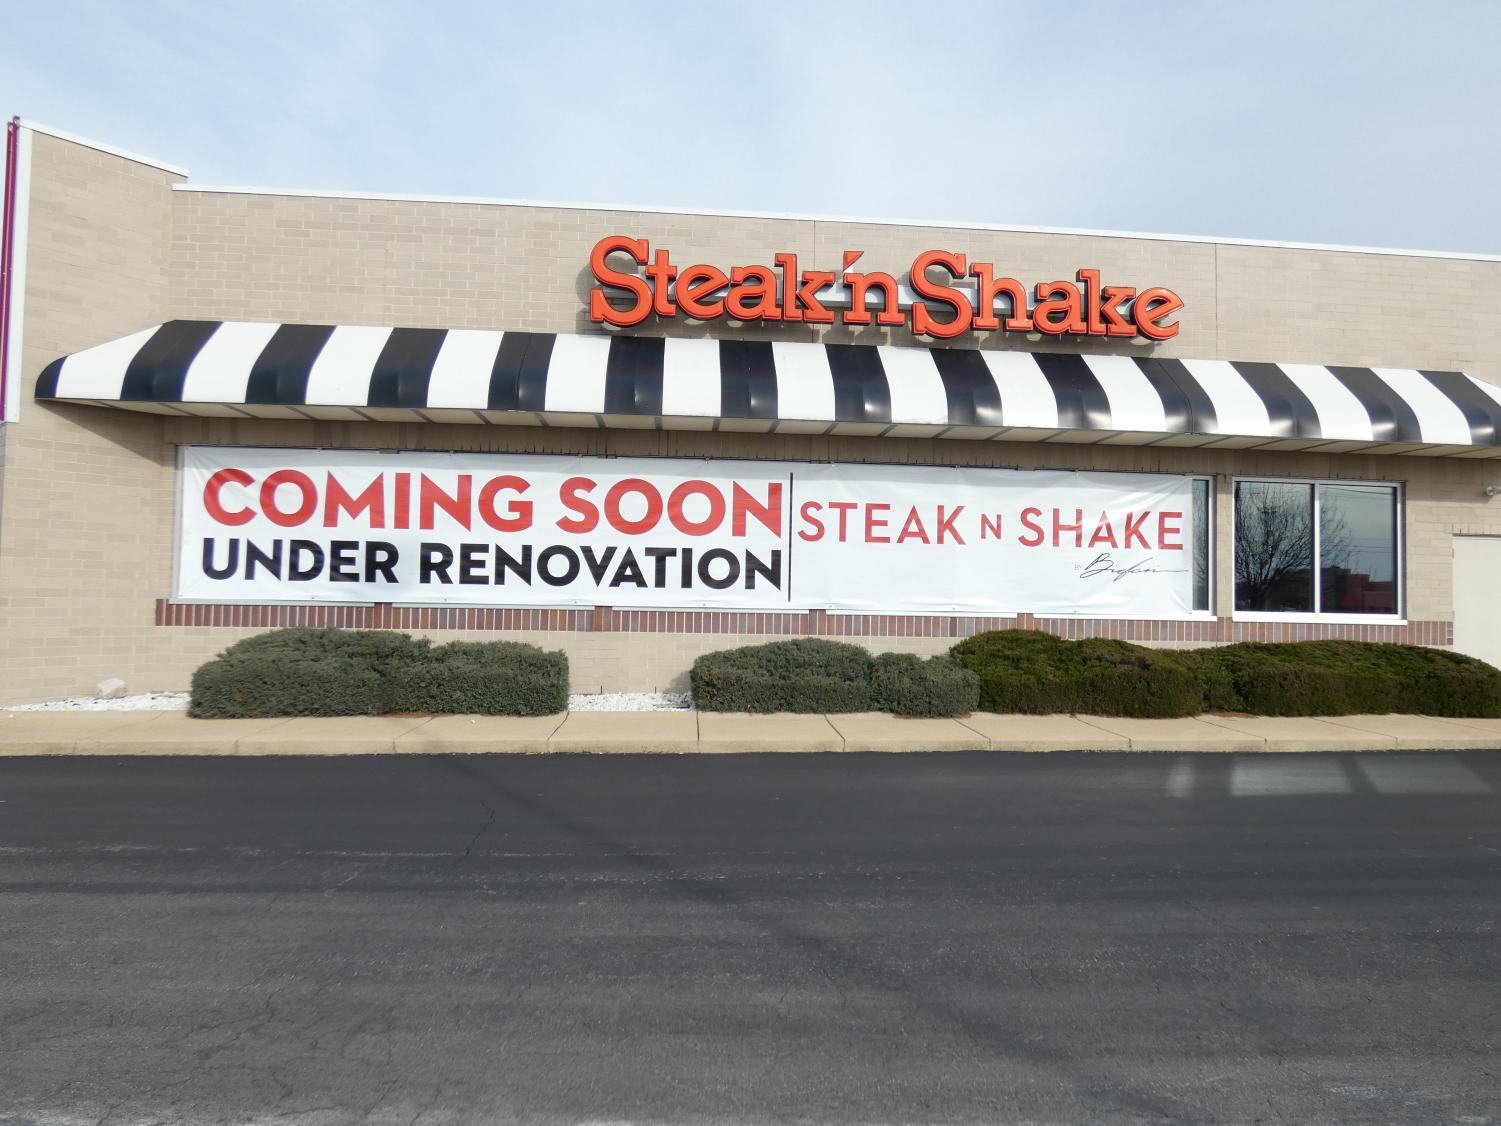 Steak 'n Shake on Chesterfield Valley, currently closed until they get a franchising partner.